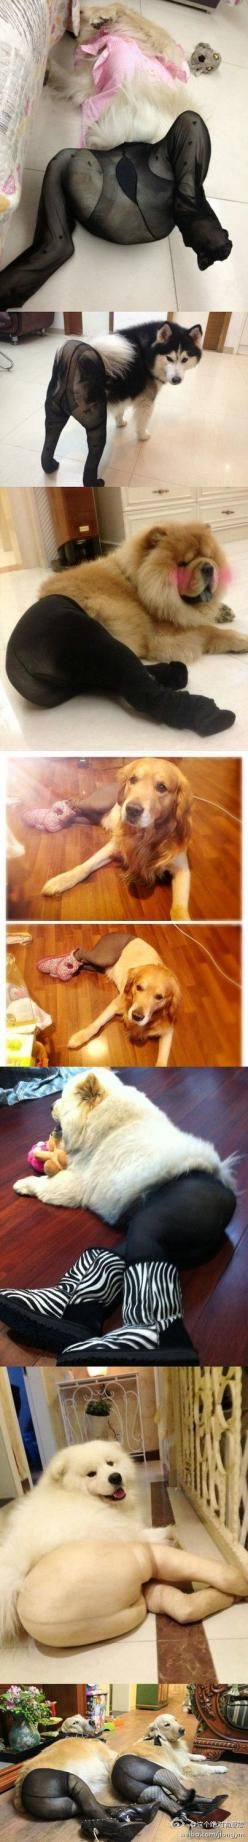 OMG. I laughed until I cried!!!!!!!: Giggle, Cant, Thought, Poor Dogs, So Funny, Dog Wearing Pantyhose, Can'T Stop Laughing, Animal